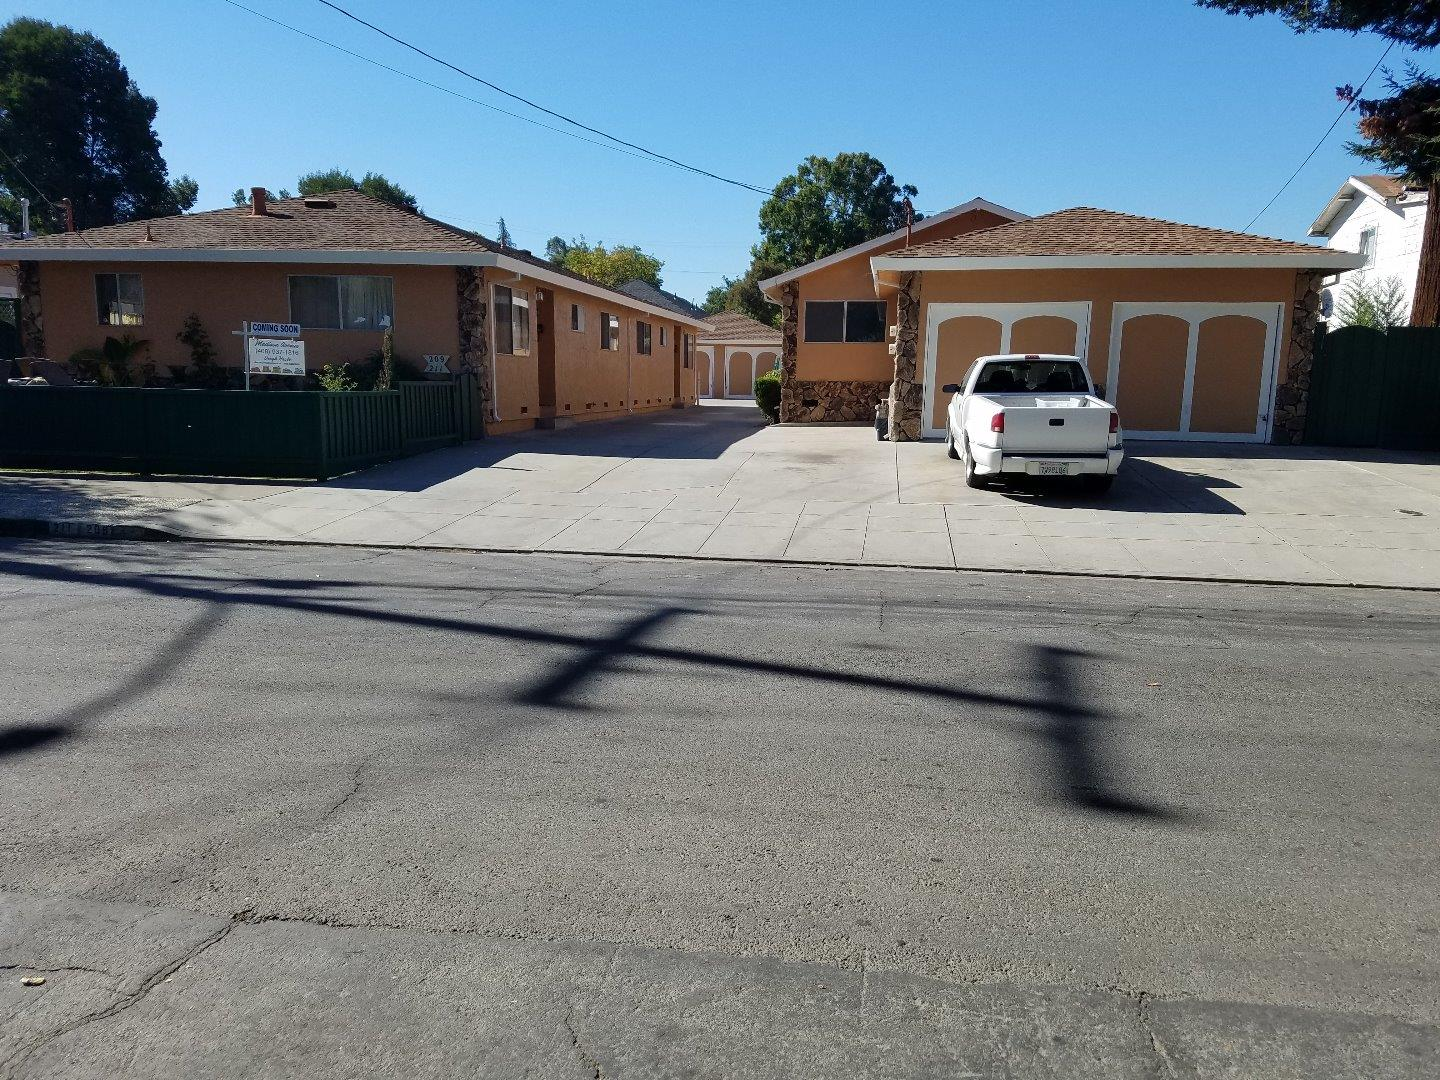 Multi-Family Home for Sale at 207 S 20th Street 207 S 20th Street San Jose, California 95116 United States